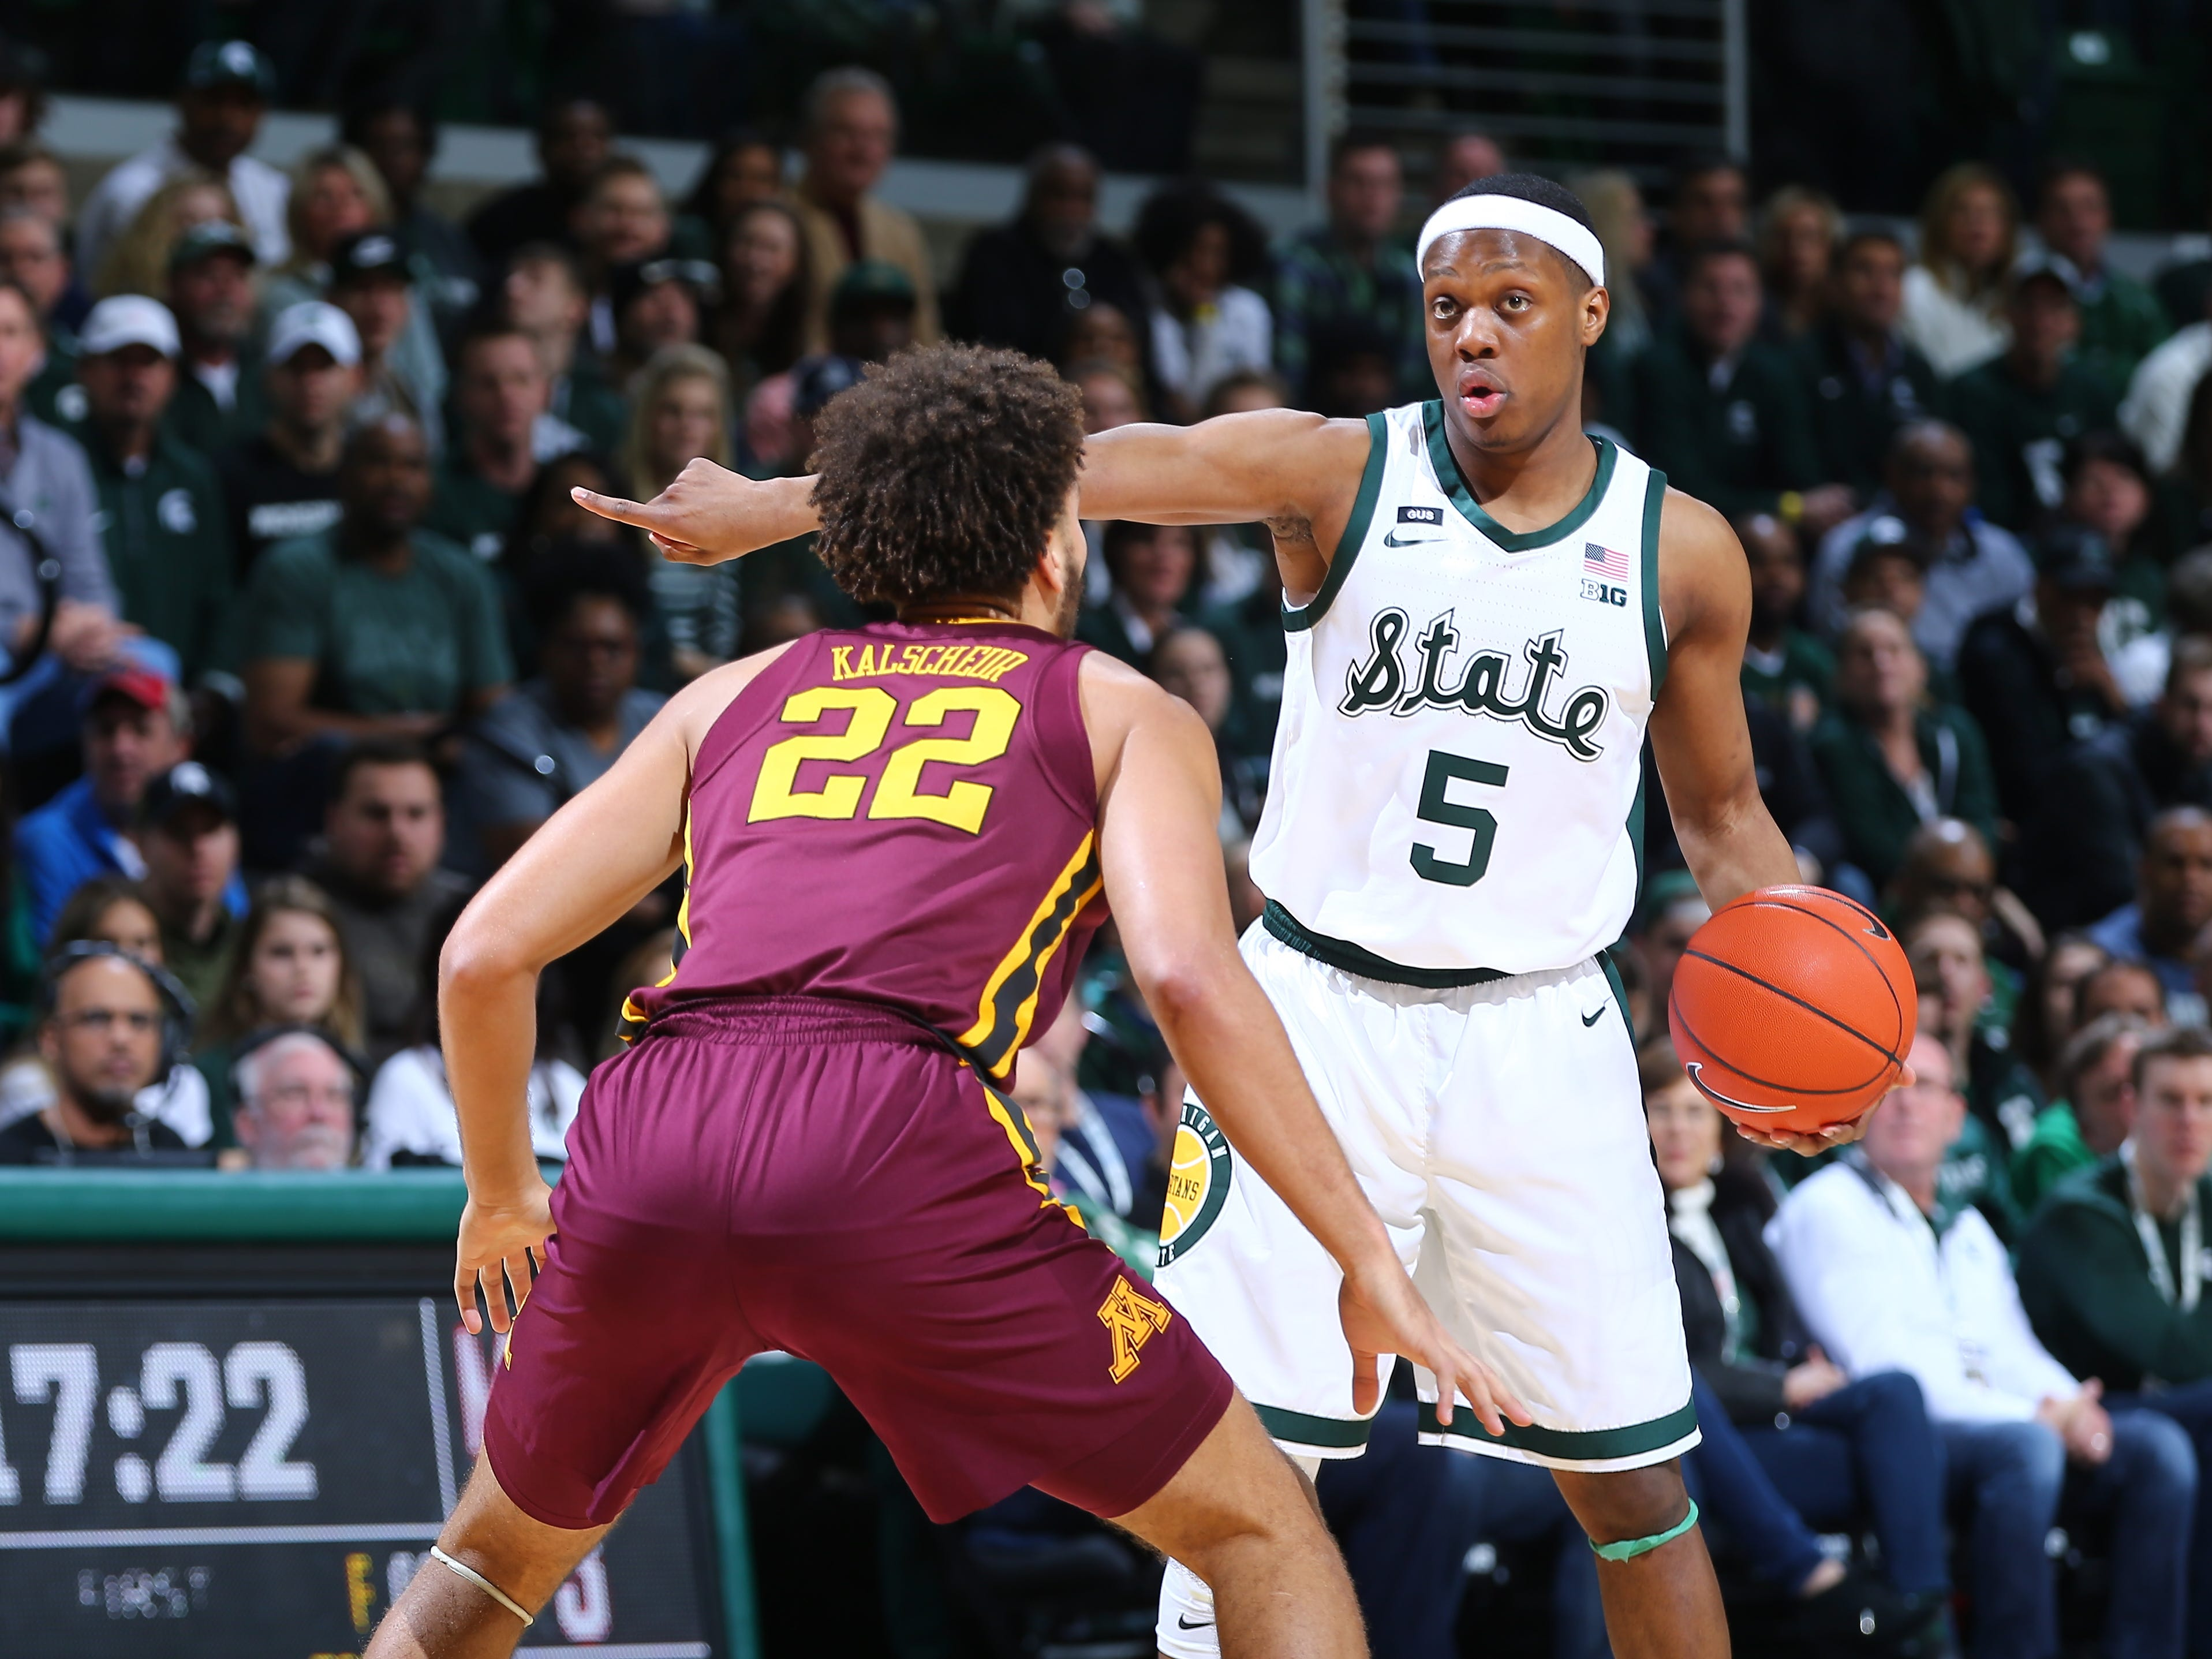 Cassius Winston of the Michigan State Spartans directs play while defended by Gabe Kalscheur of the Minnesota Golden Gophers in the first half at Breslin Center on February 9, 2019, in East Lansing, Michigan. Michigan State won the game 79-55.